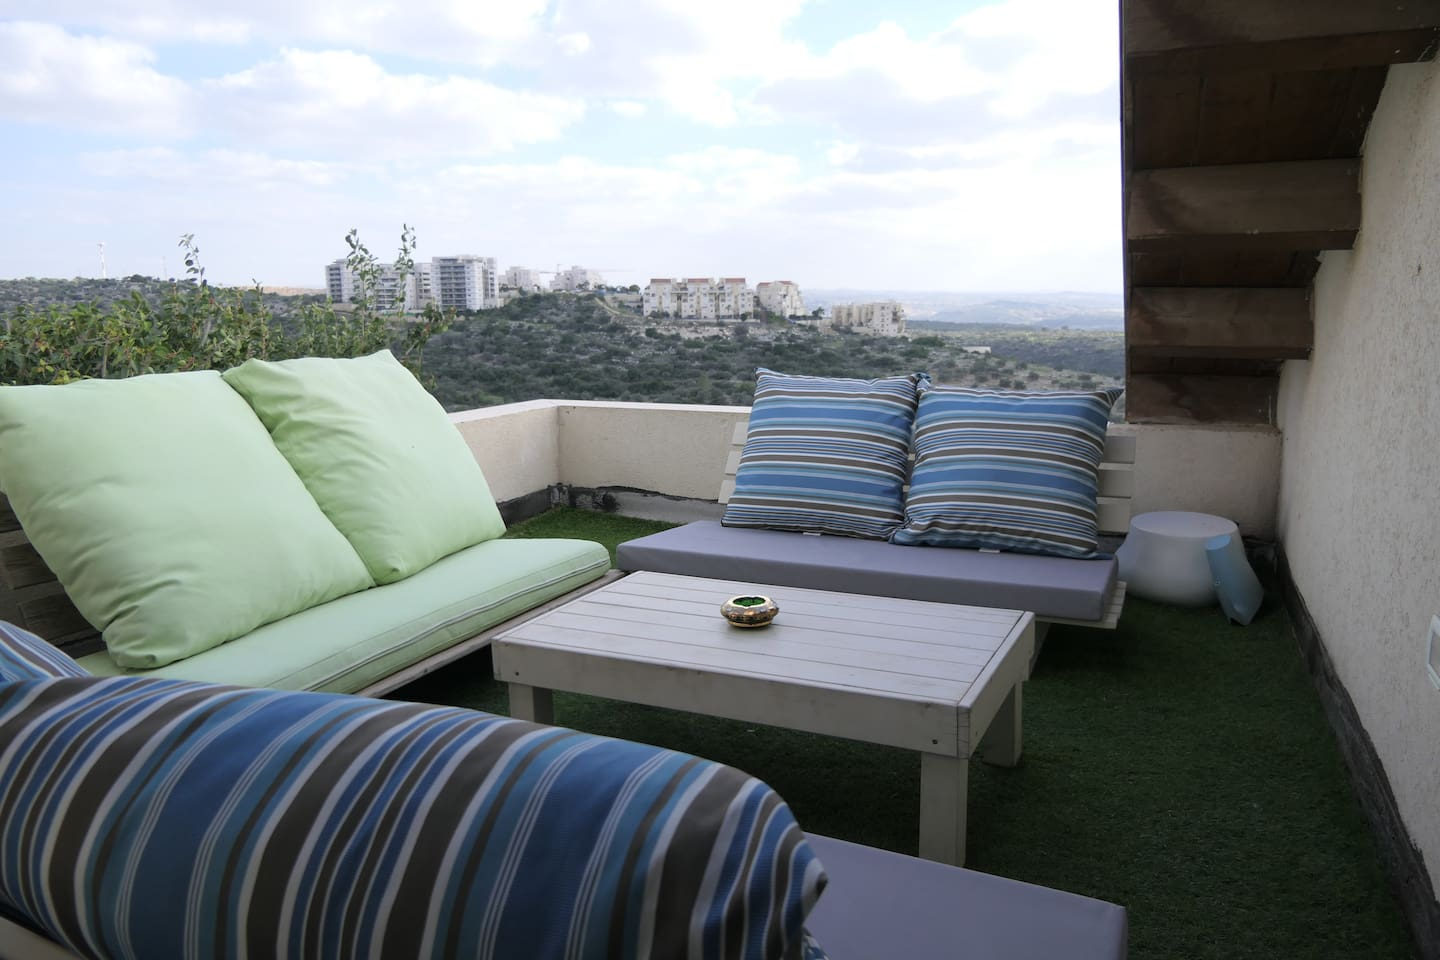 The entrance is through the bedroom, the balcony has an amazing view of many nearby cities and many green areas. Just imagine yourself drinking some hot beverage here...